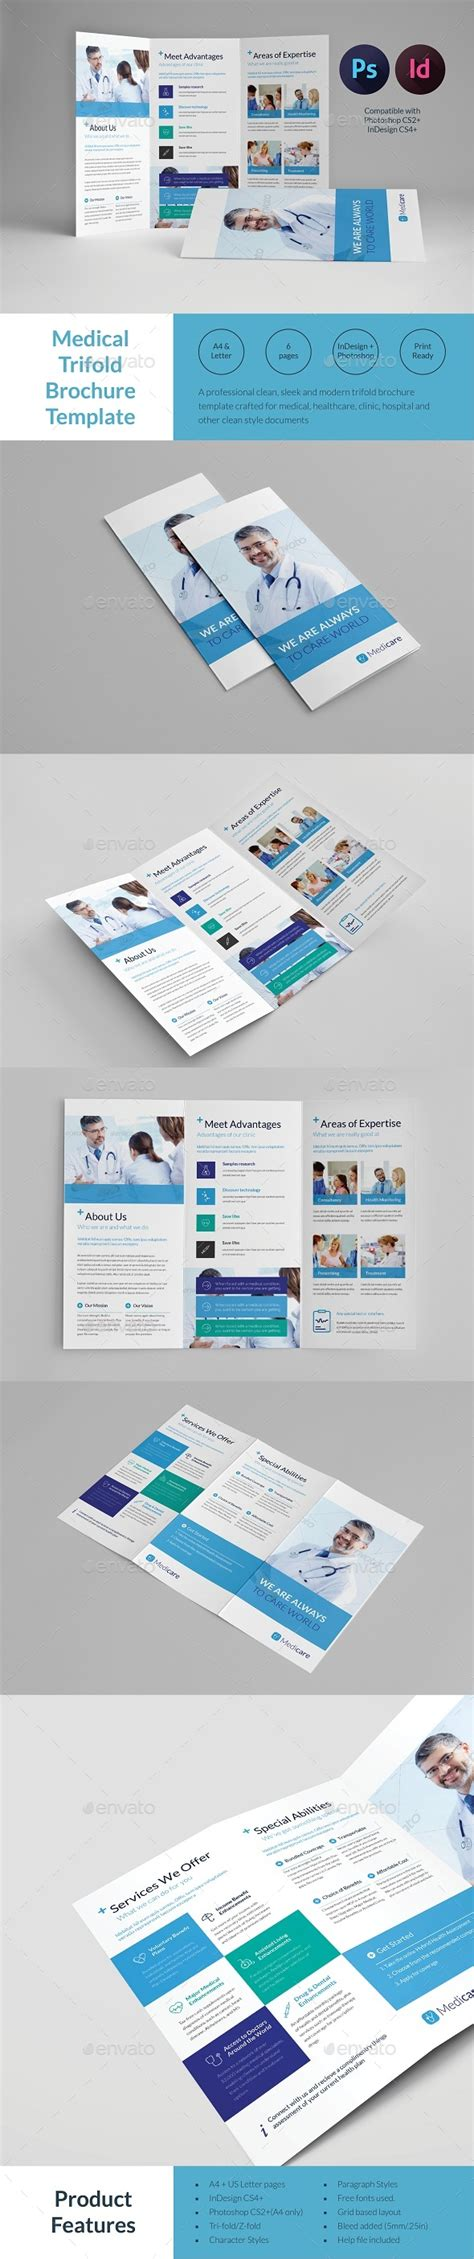 Informational Brochure Templates by Informational Brochure Template Brickhost 5986b785bc37